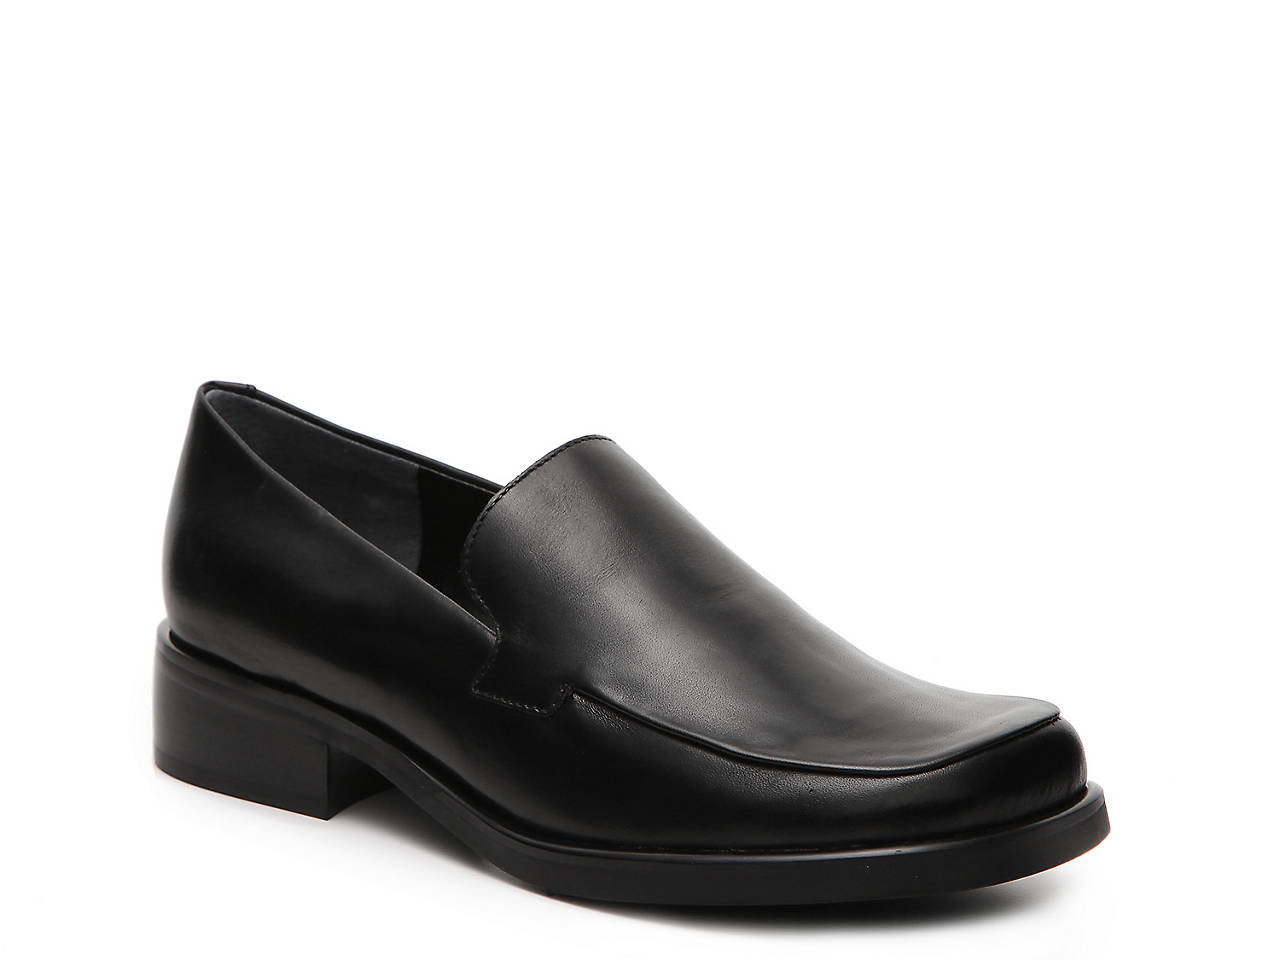 b39e2091c5d Franco Sarto Bocca Loafer Women s Shoes